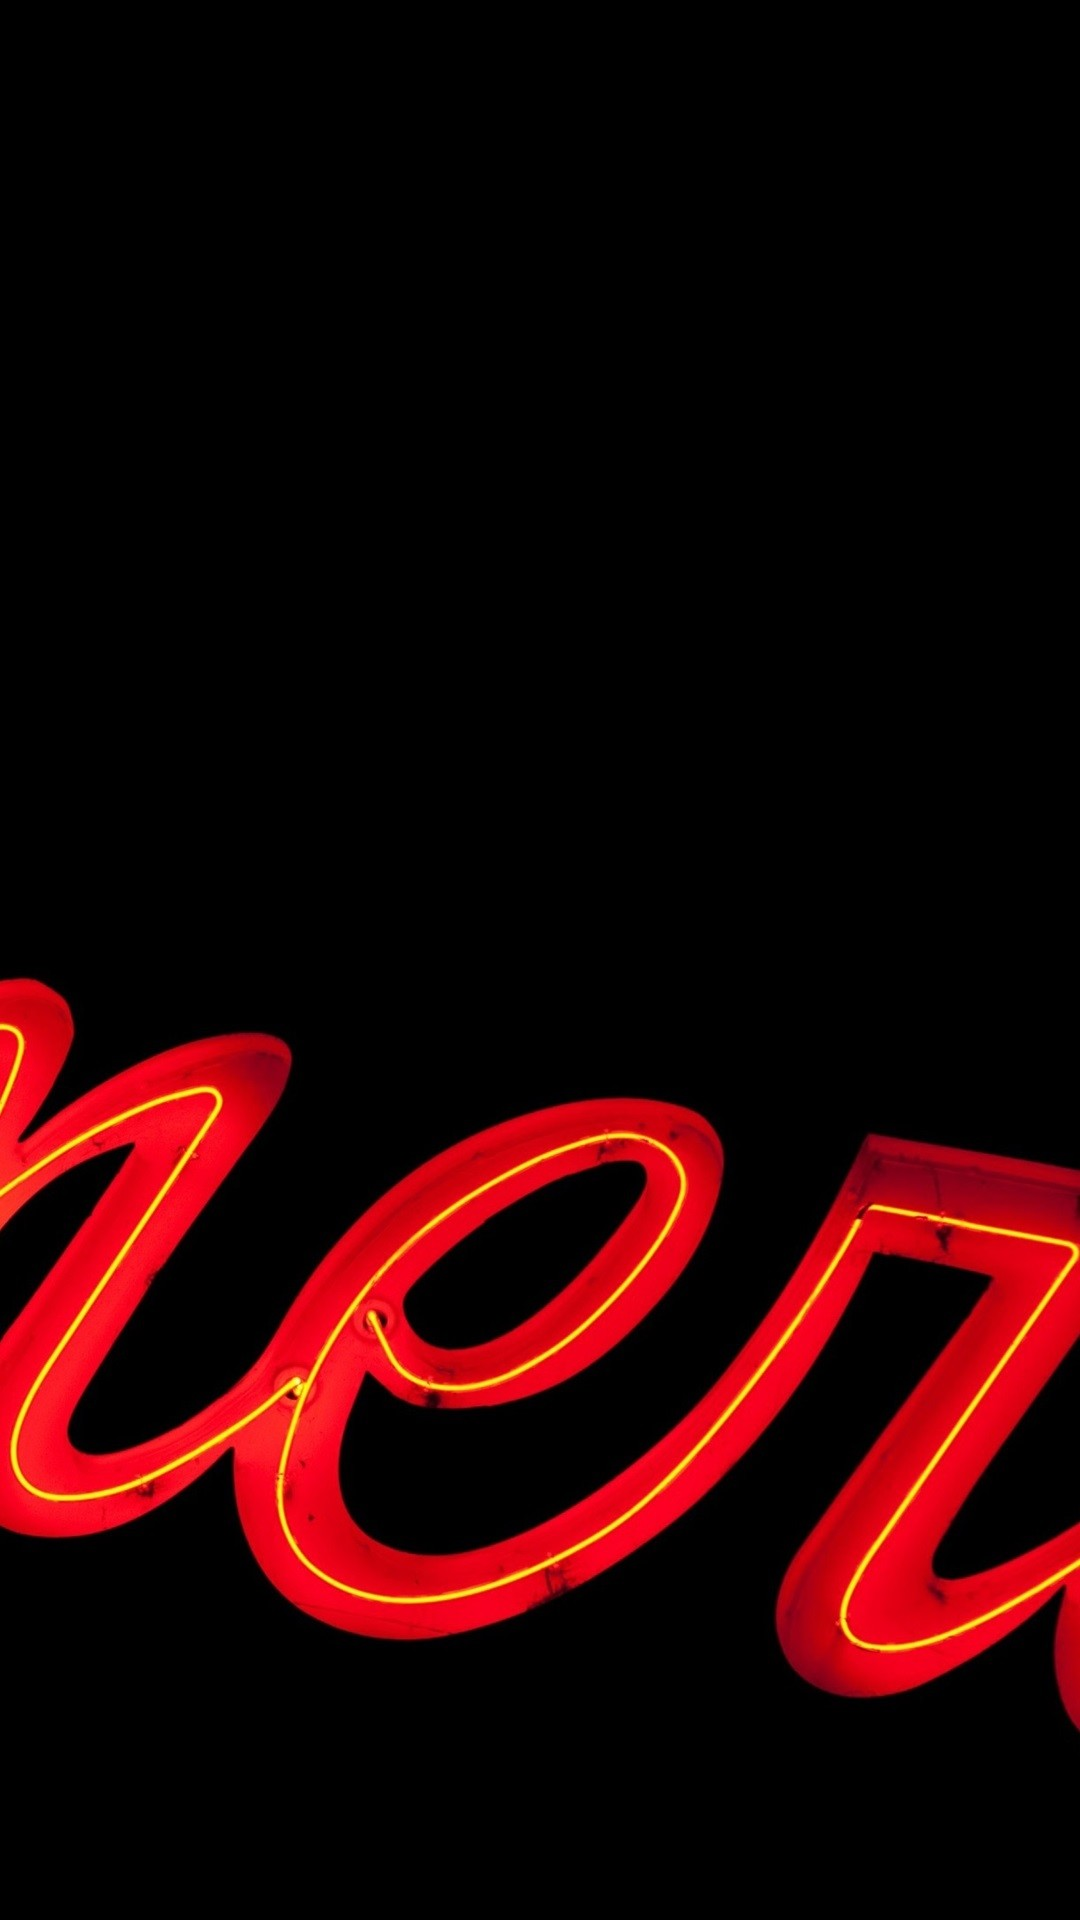 Neon Lights Iphone Wallpaper 76 Images